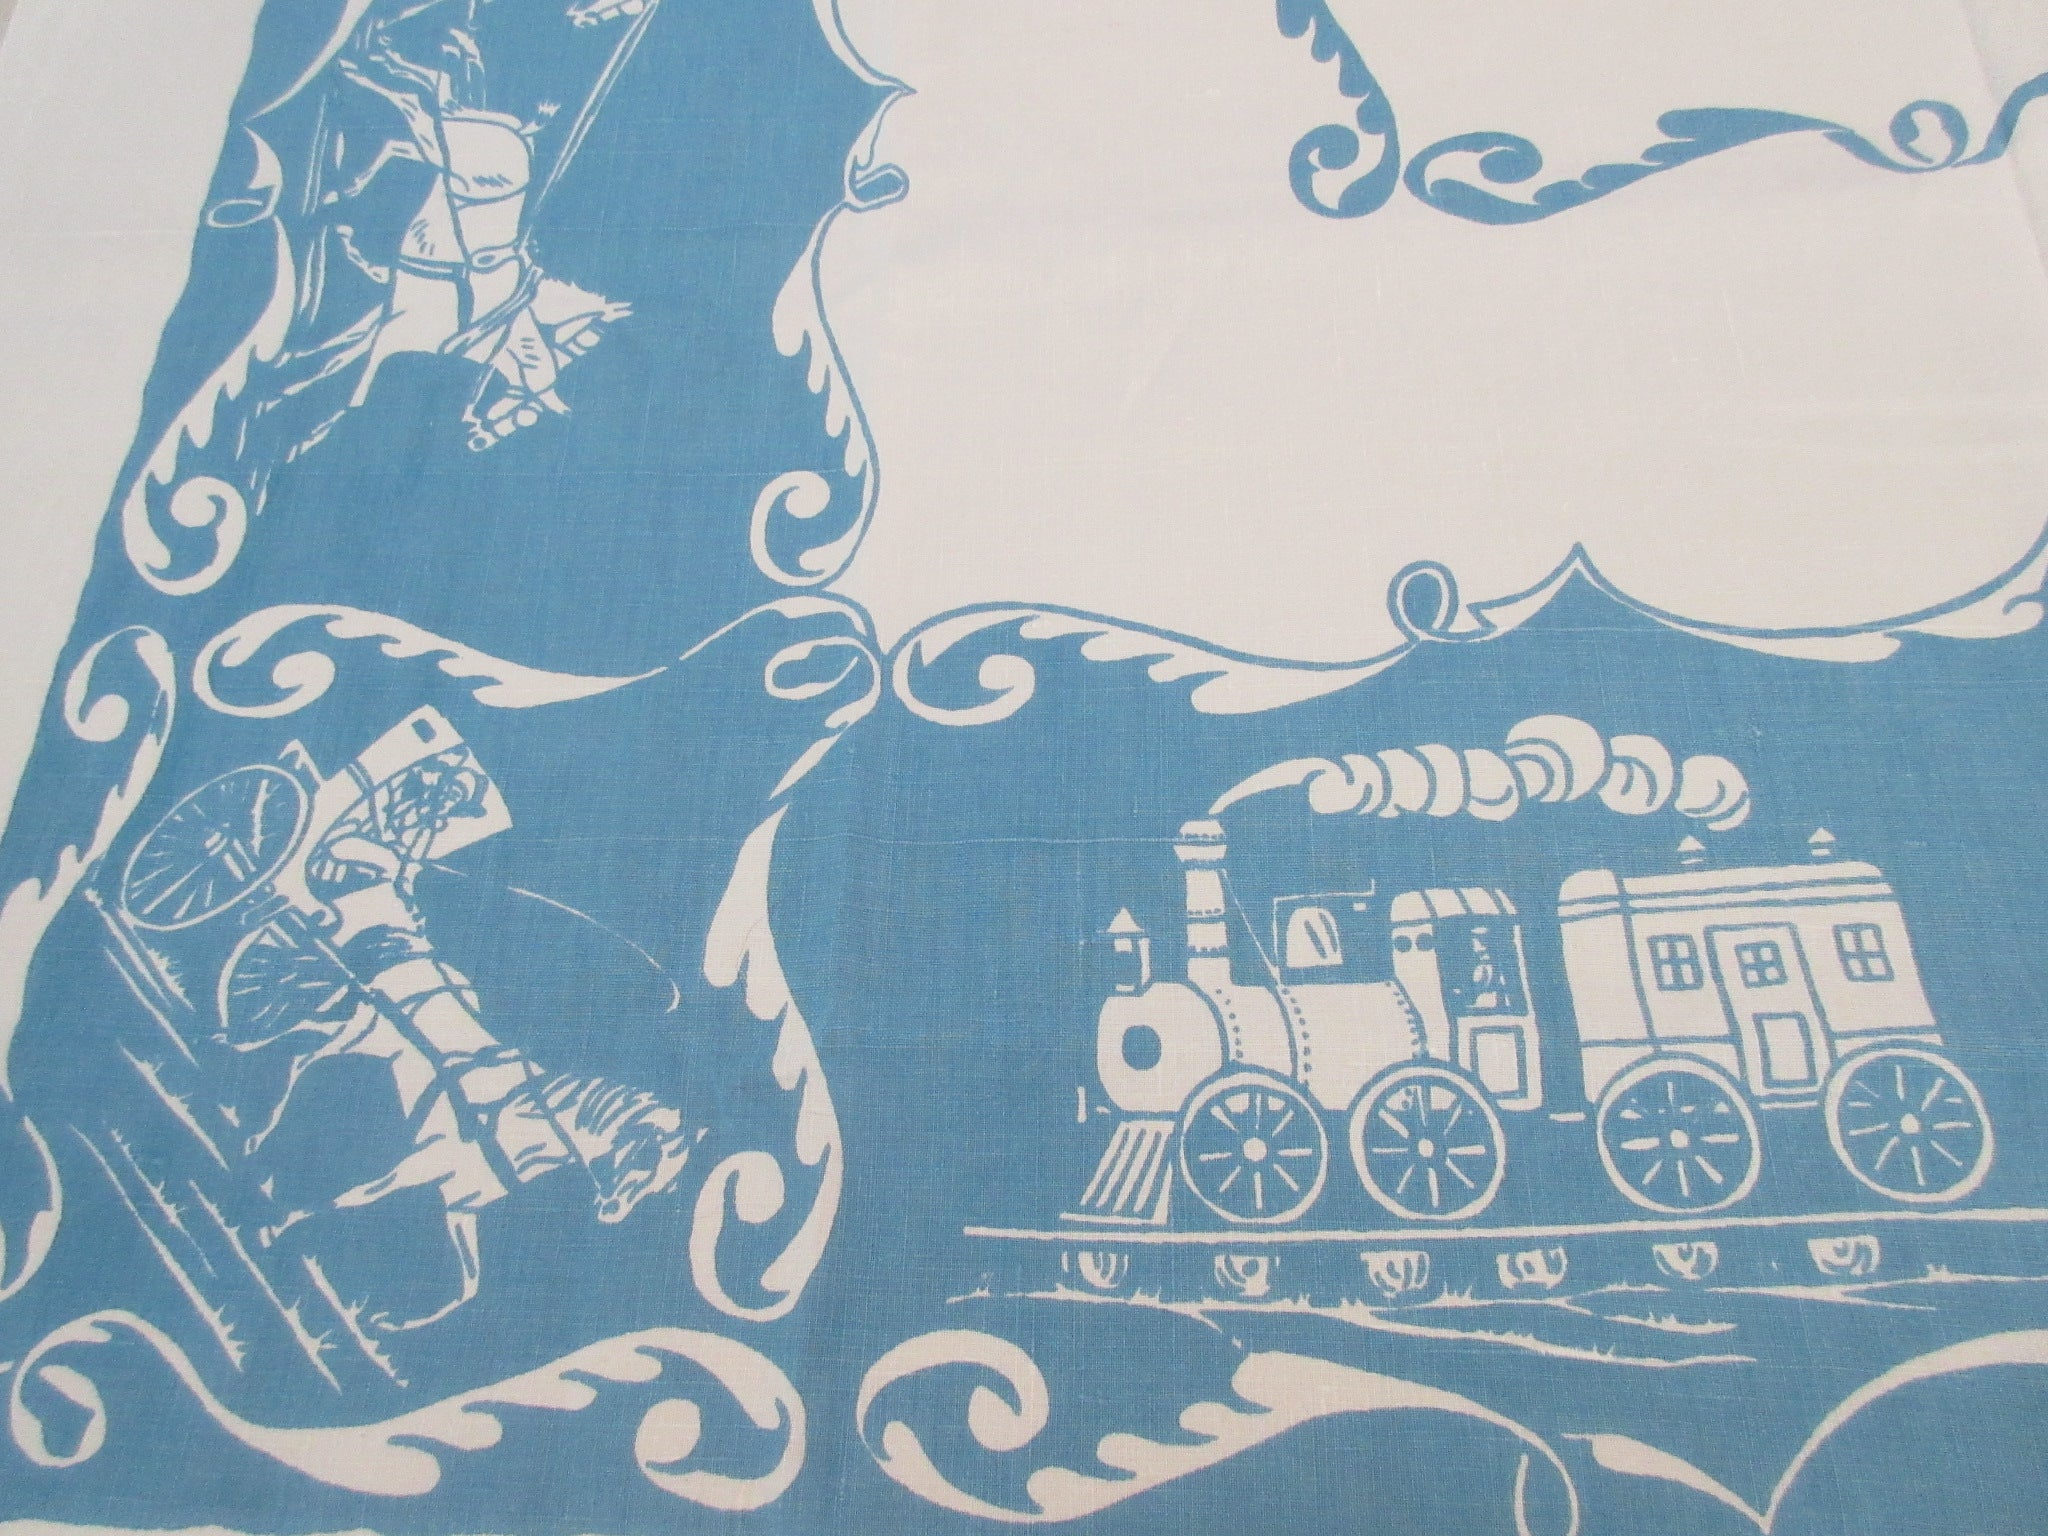 Stagecoaches Sailing Ships on Blue Signed Linen Novelty Vintage Printed Tablecloth (52 X 52)